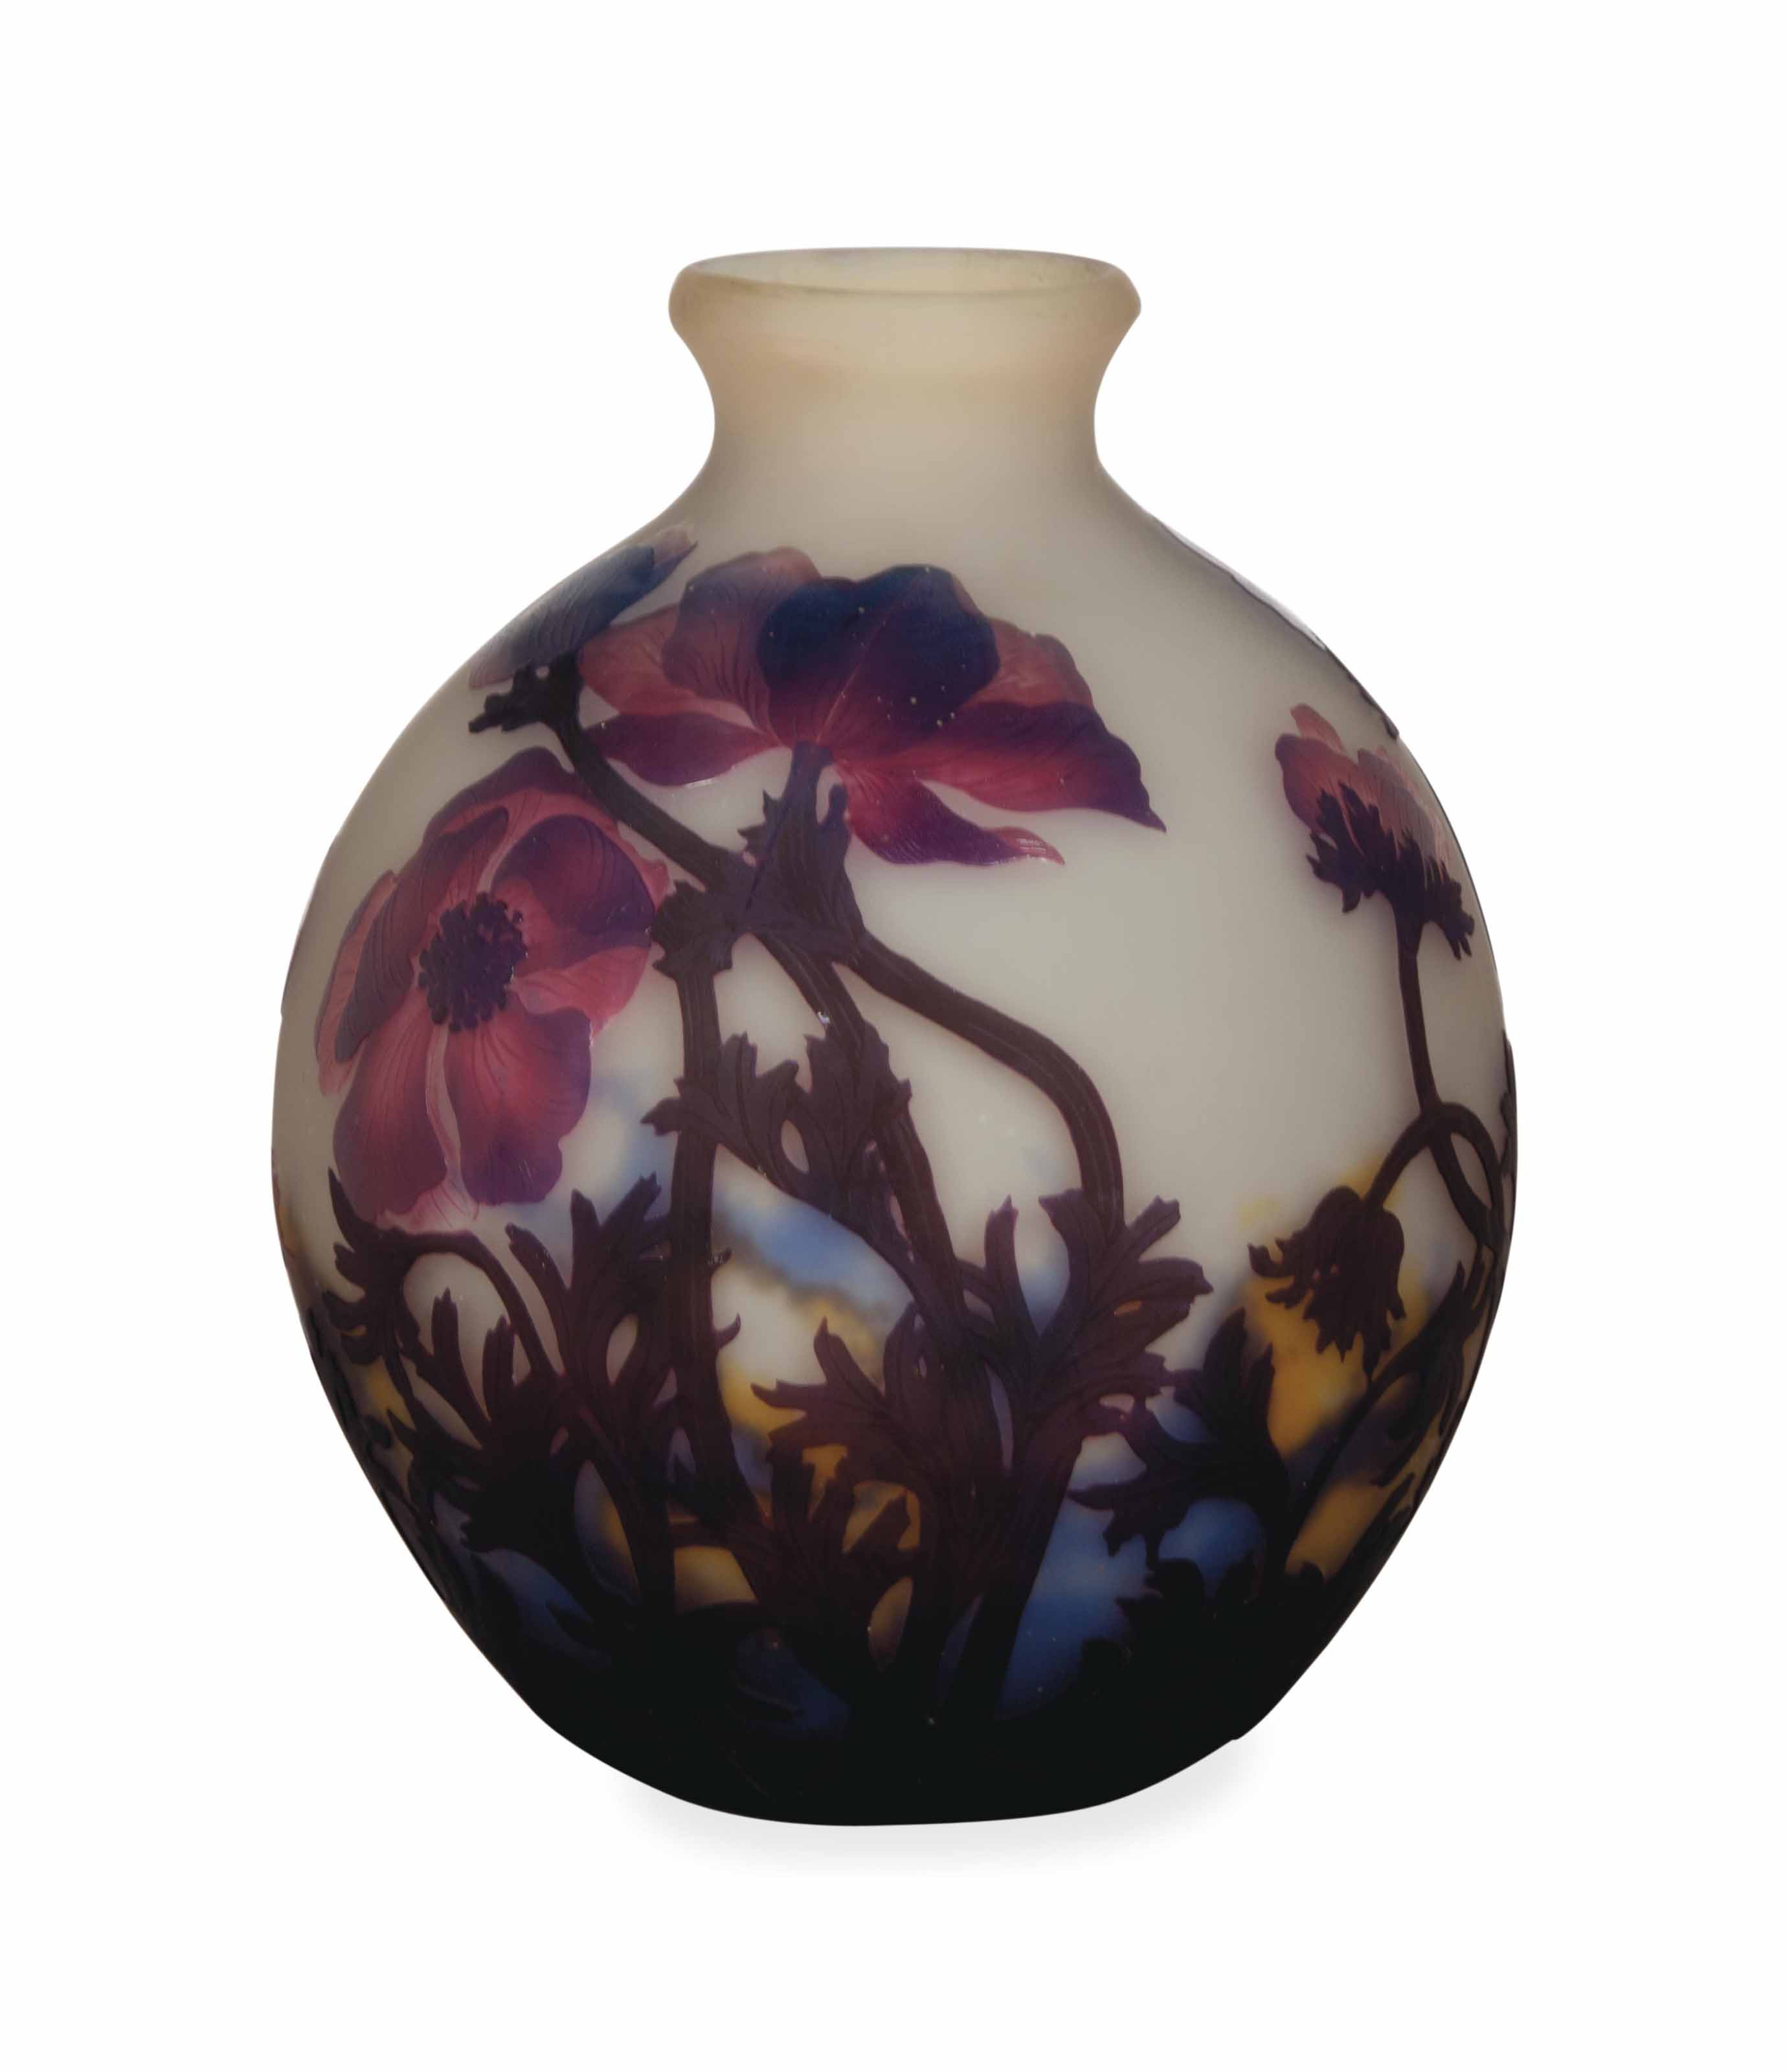 A FRENCH ETCHED CAMEO GLASS GLOBULAR VASE,